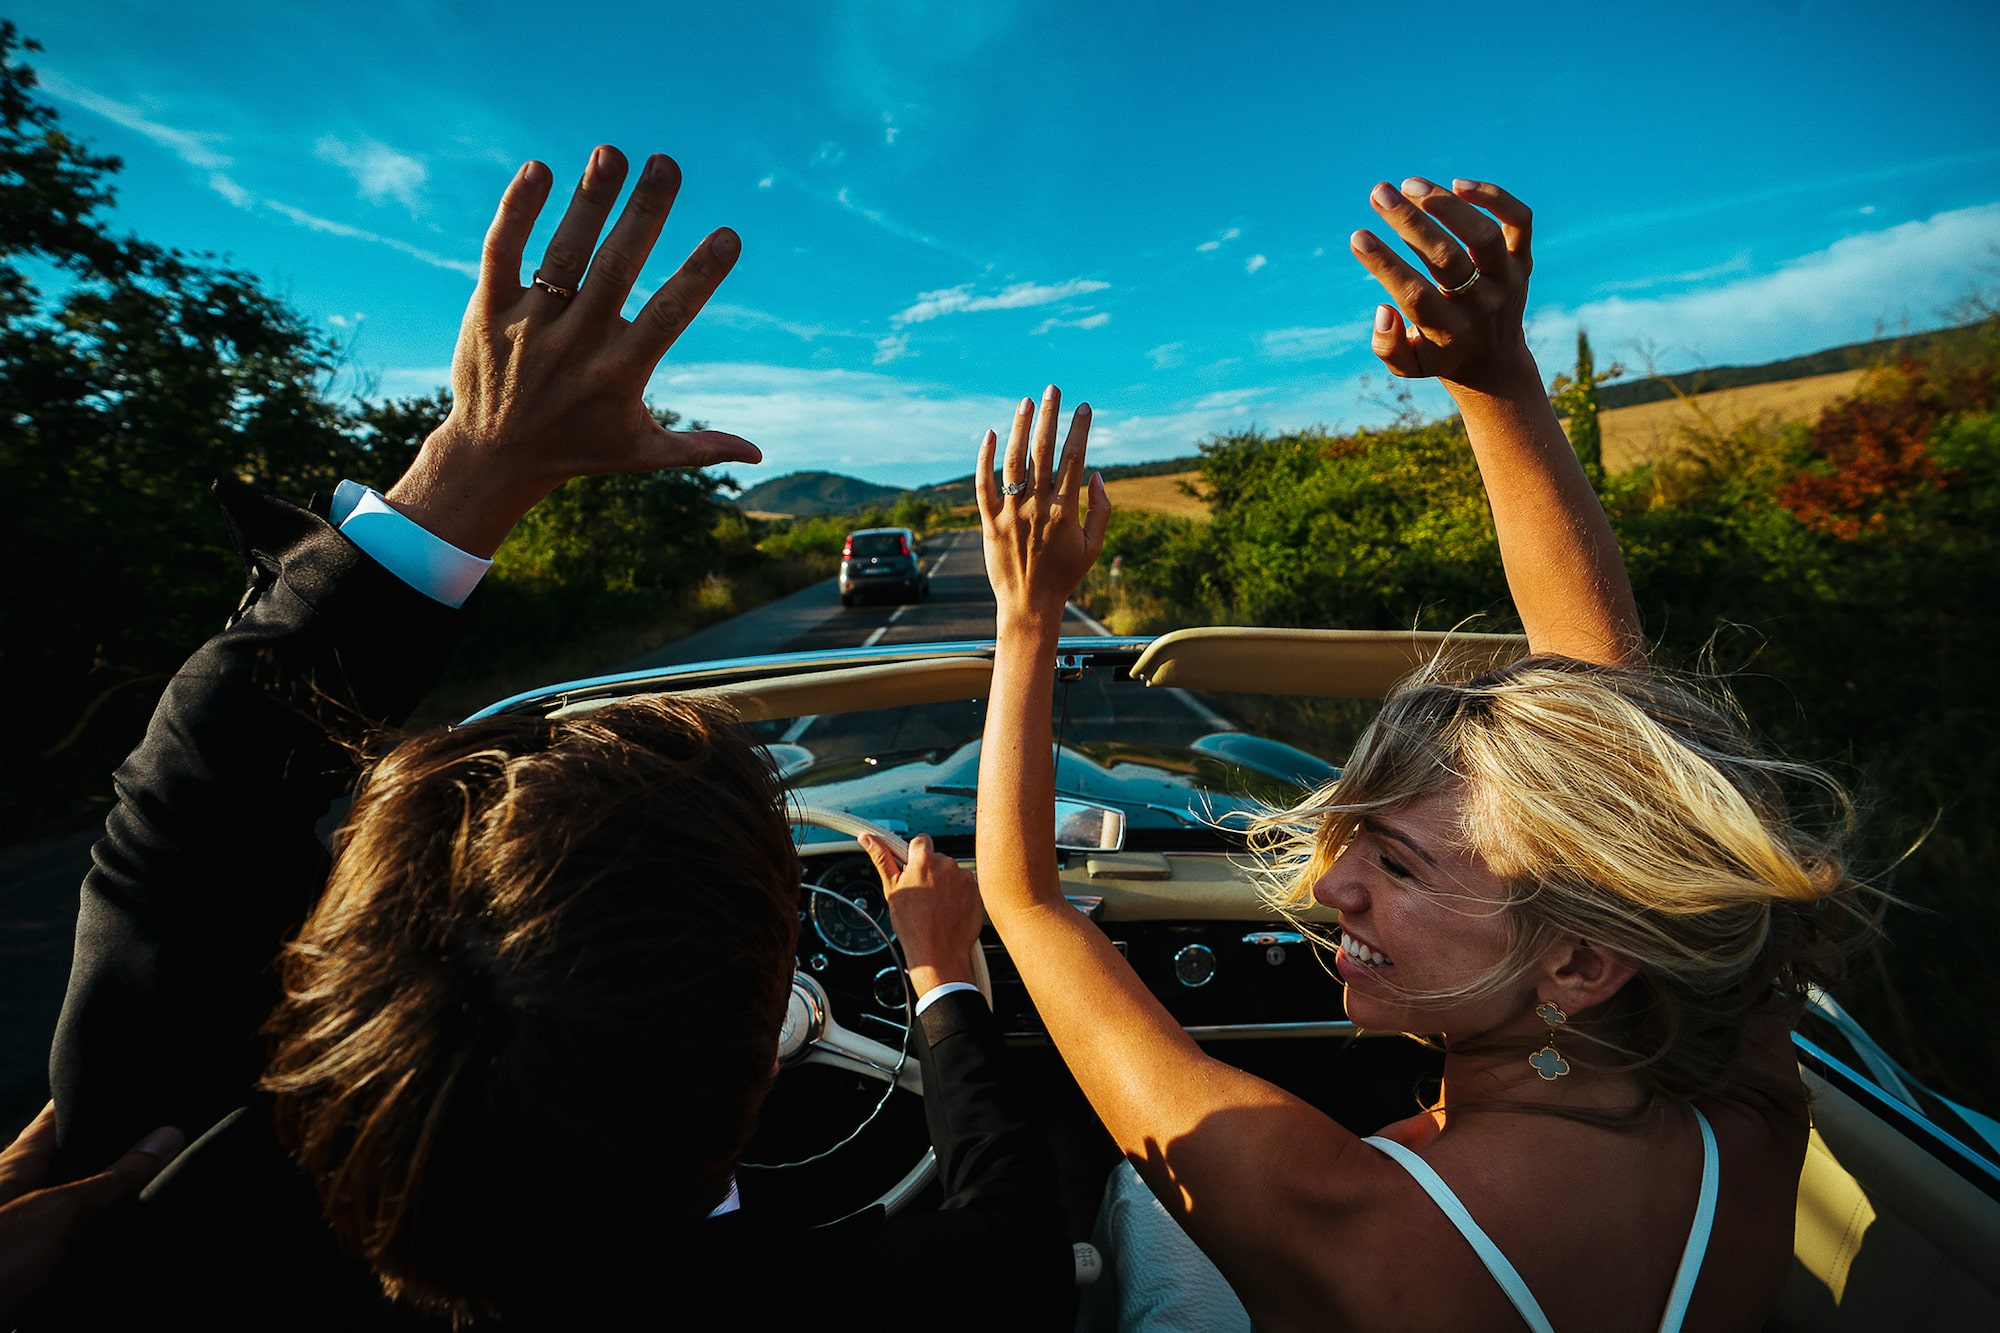 George Kasionis Stam Tsopanakis sony alpha 7m3 bride and groom raise hands in joy as they ride on a sunny tuscan road